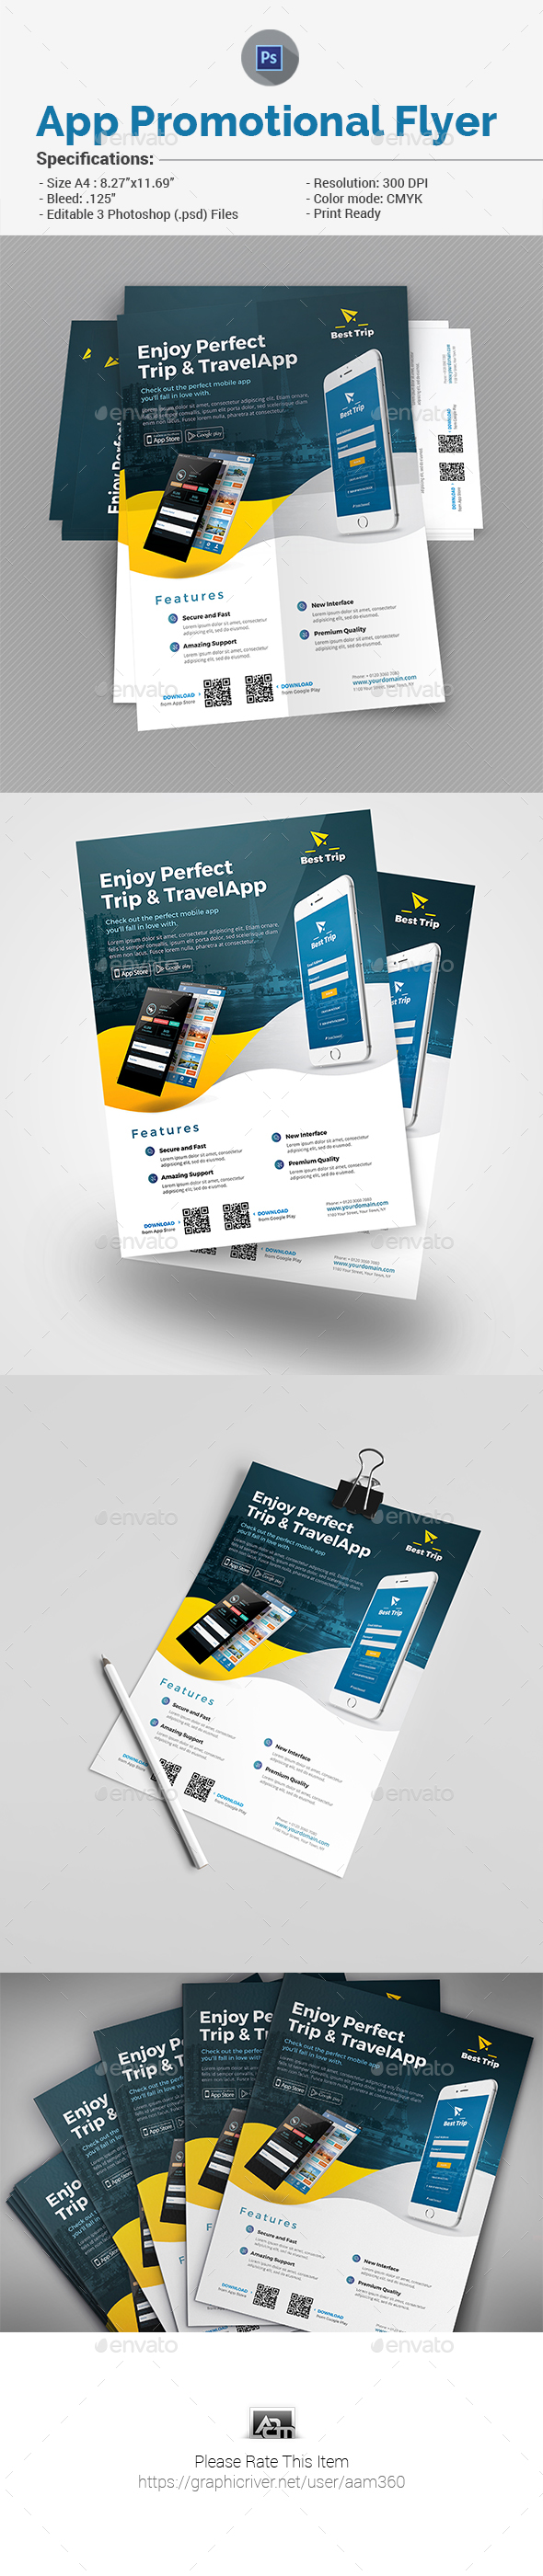 Mobile App Promotion Flyer - Commerce Flyers